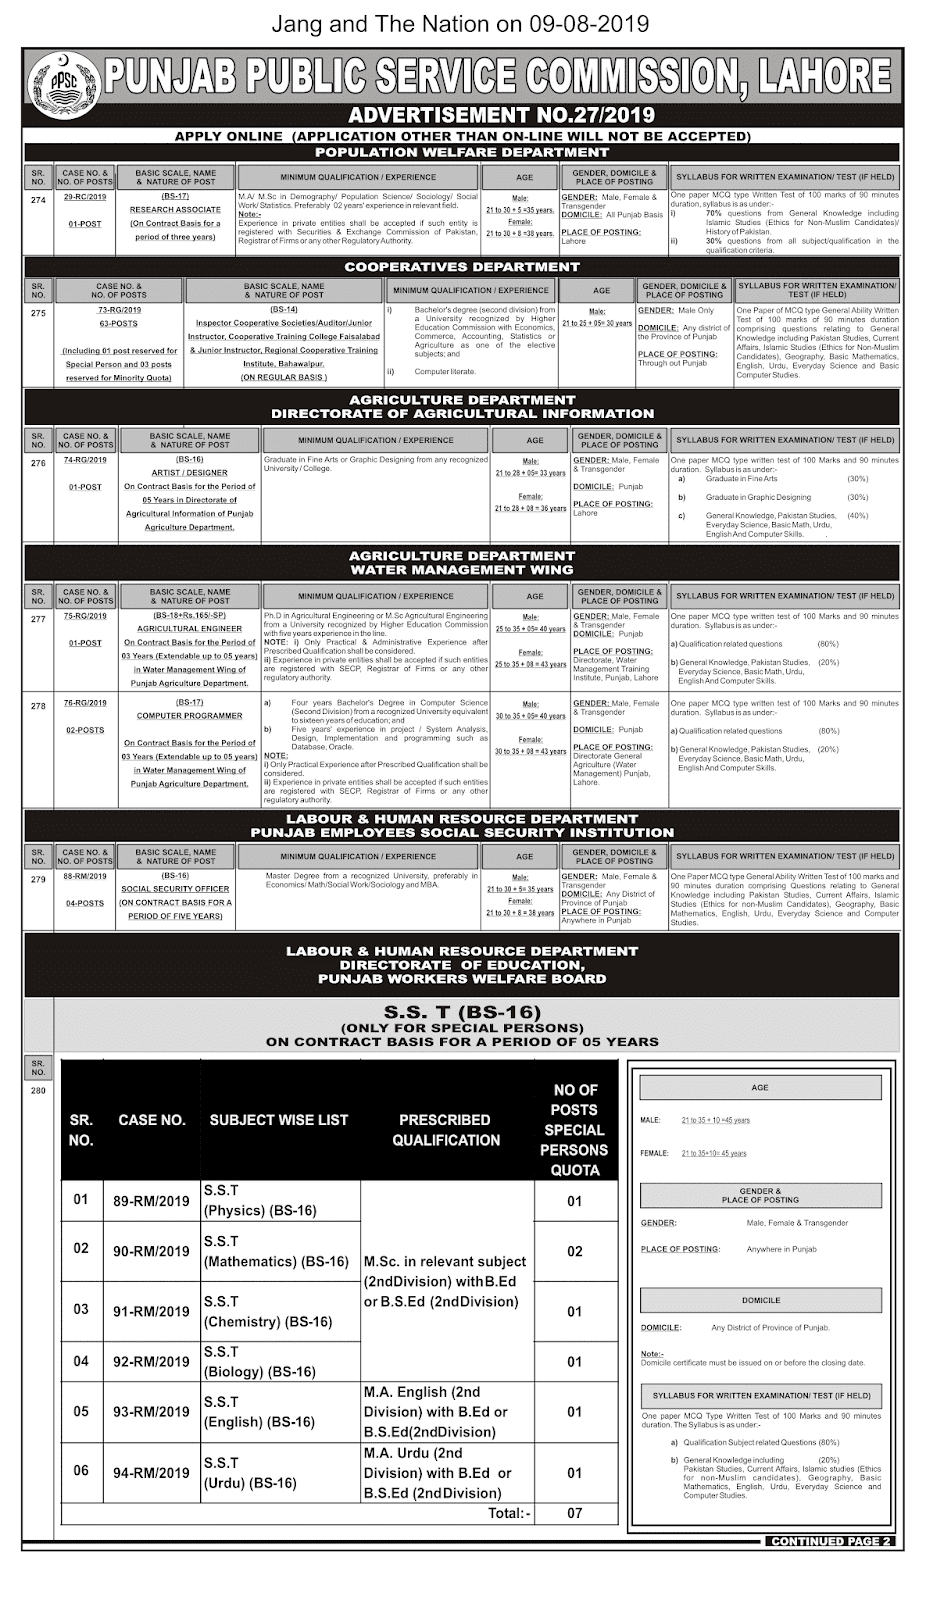 PPSC Advertisement 27/2019 Page Number 1/2